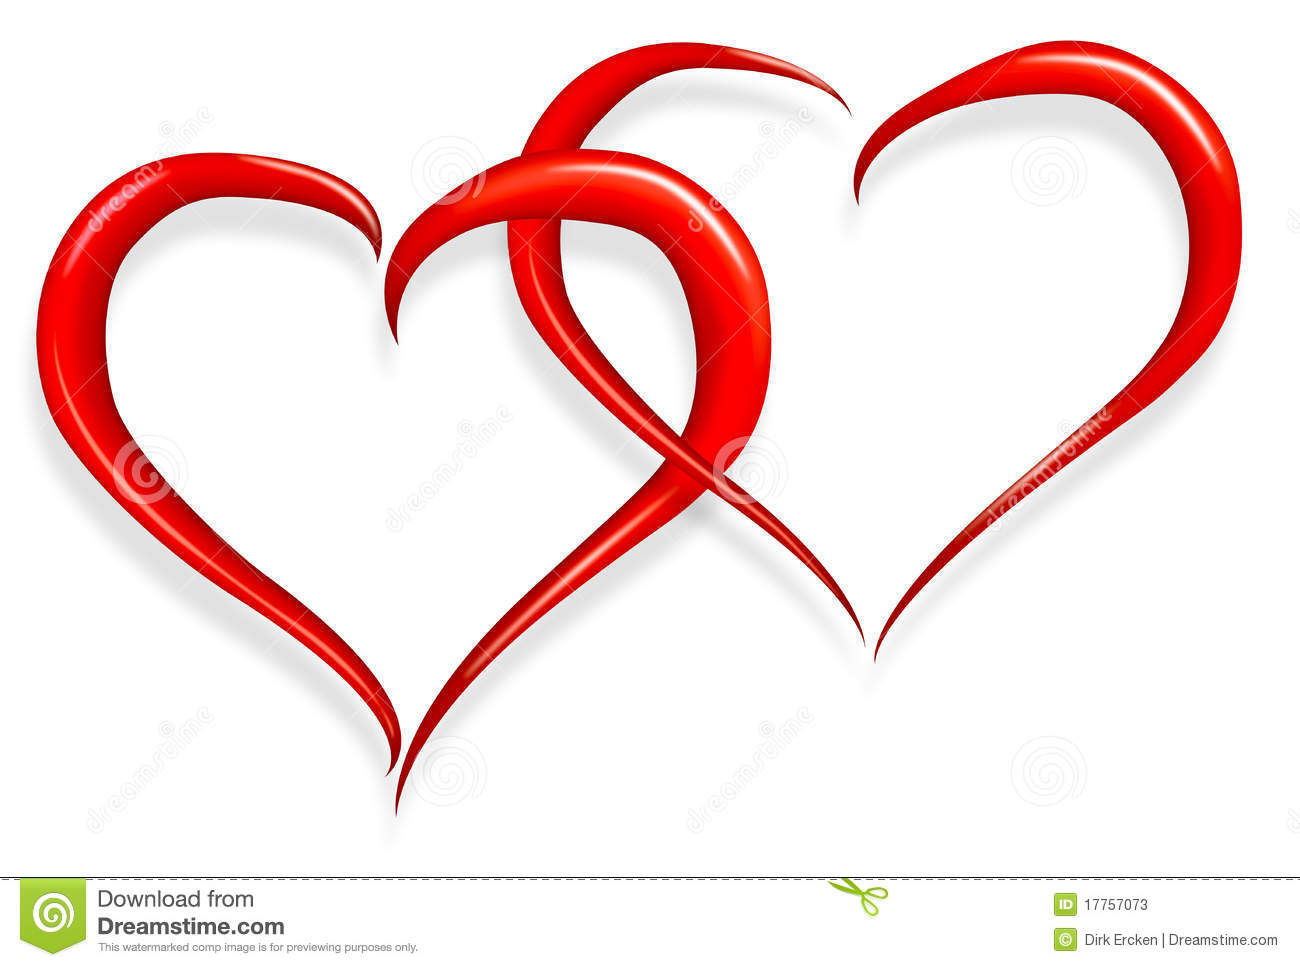 love heart happy valentines day stock illustration - illustration of